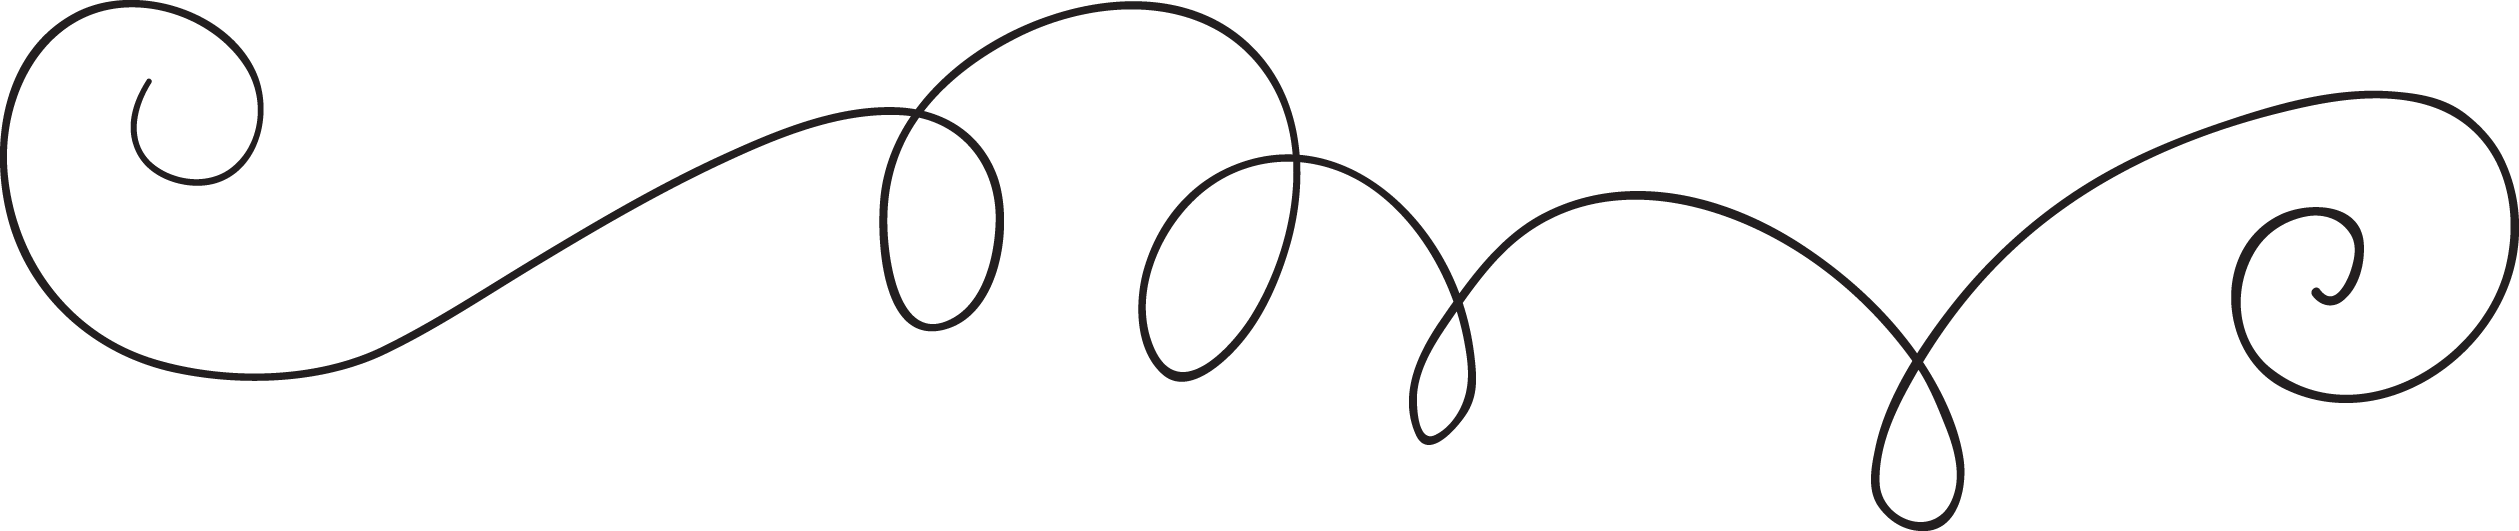 Swirly Lines Png (+).